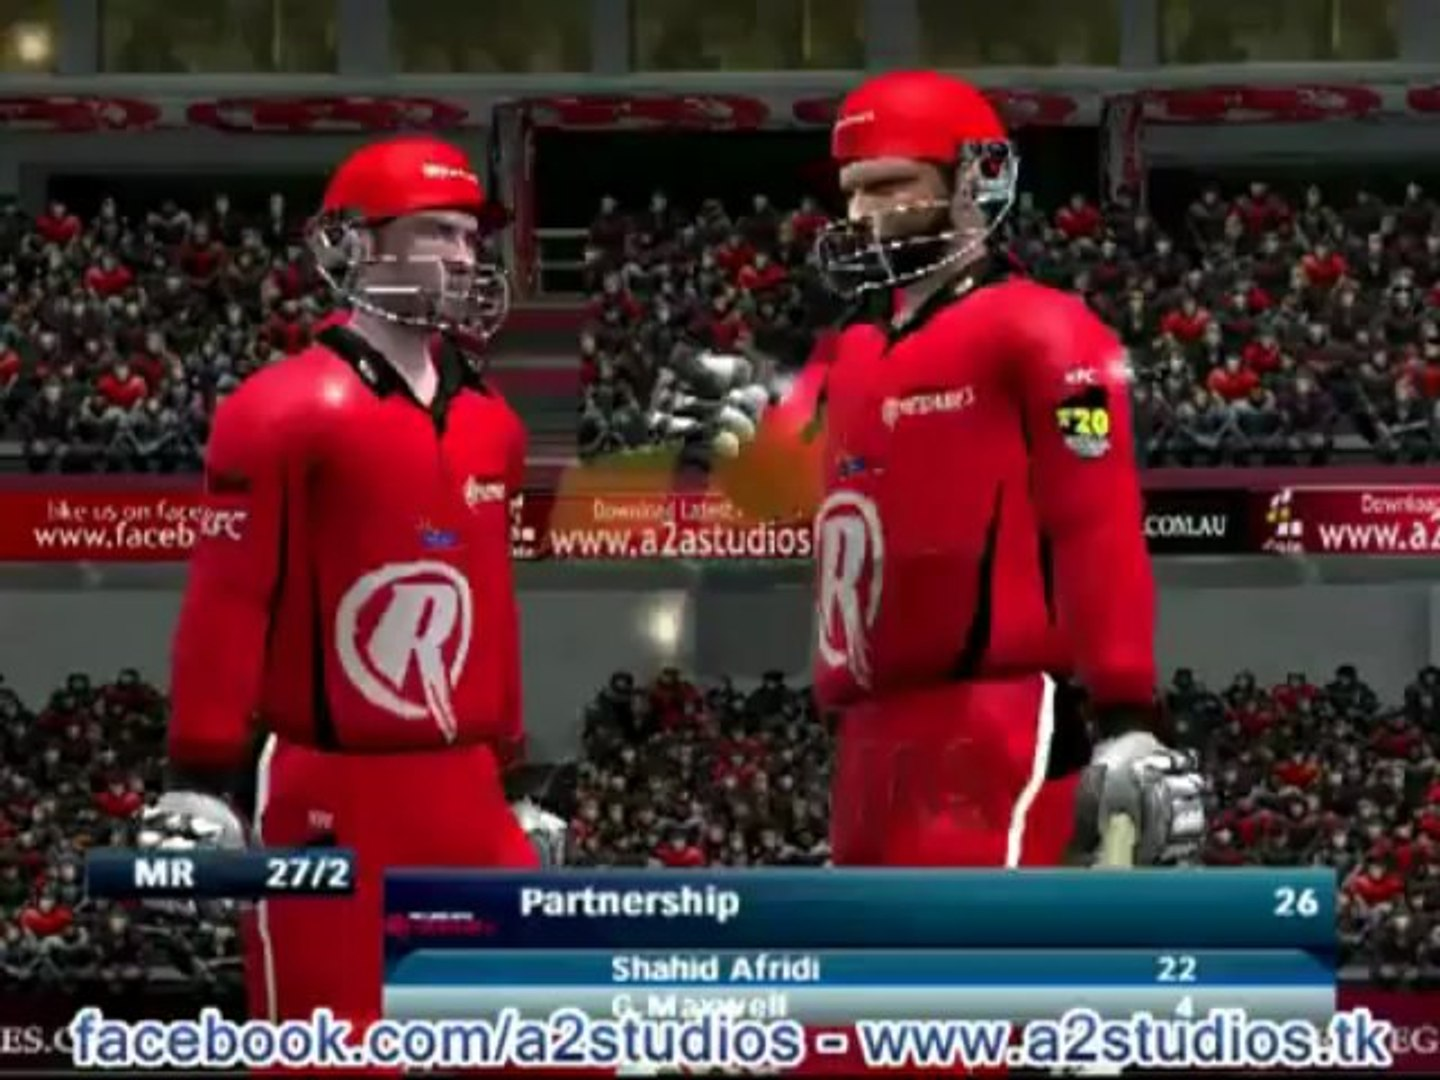 EA Sports Cricket 2013 Big Bash League Patch by A2 Studios BBL Patch for Cricket 07 www.a2studios.tk